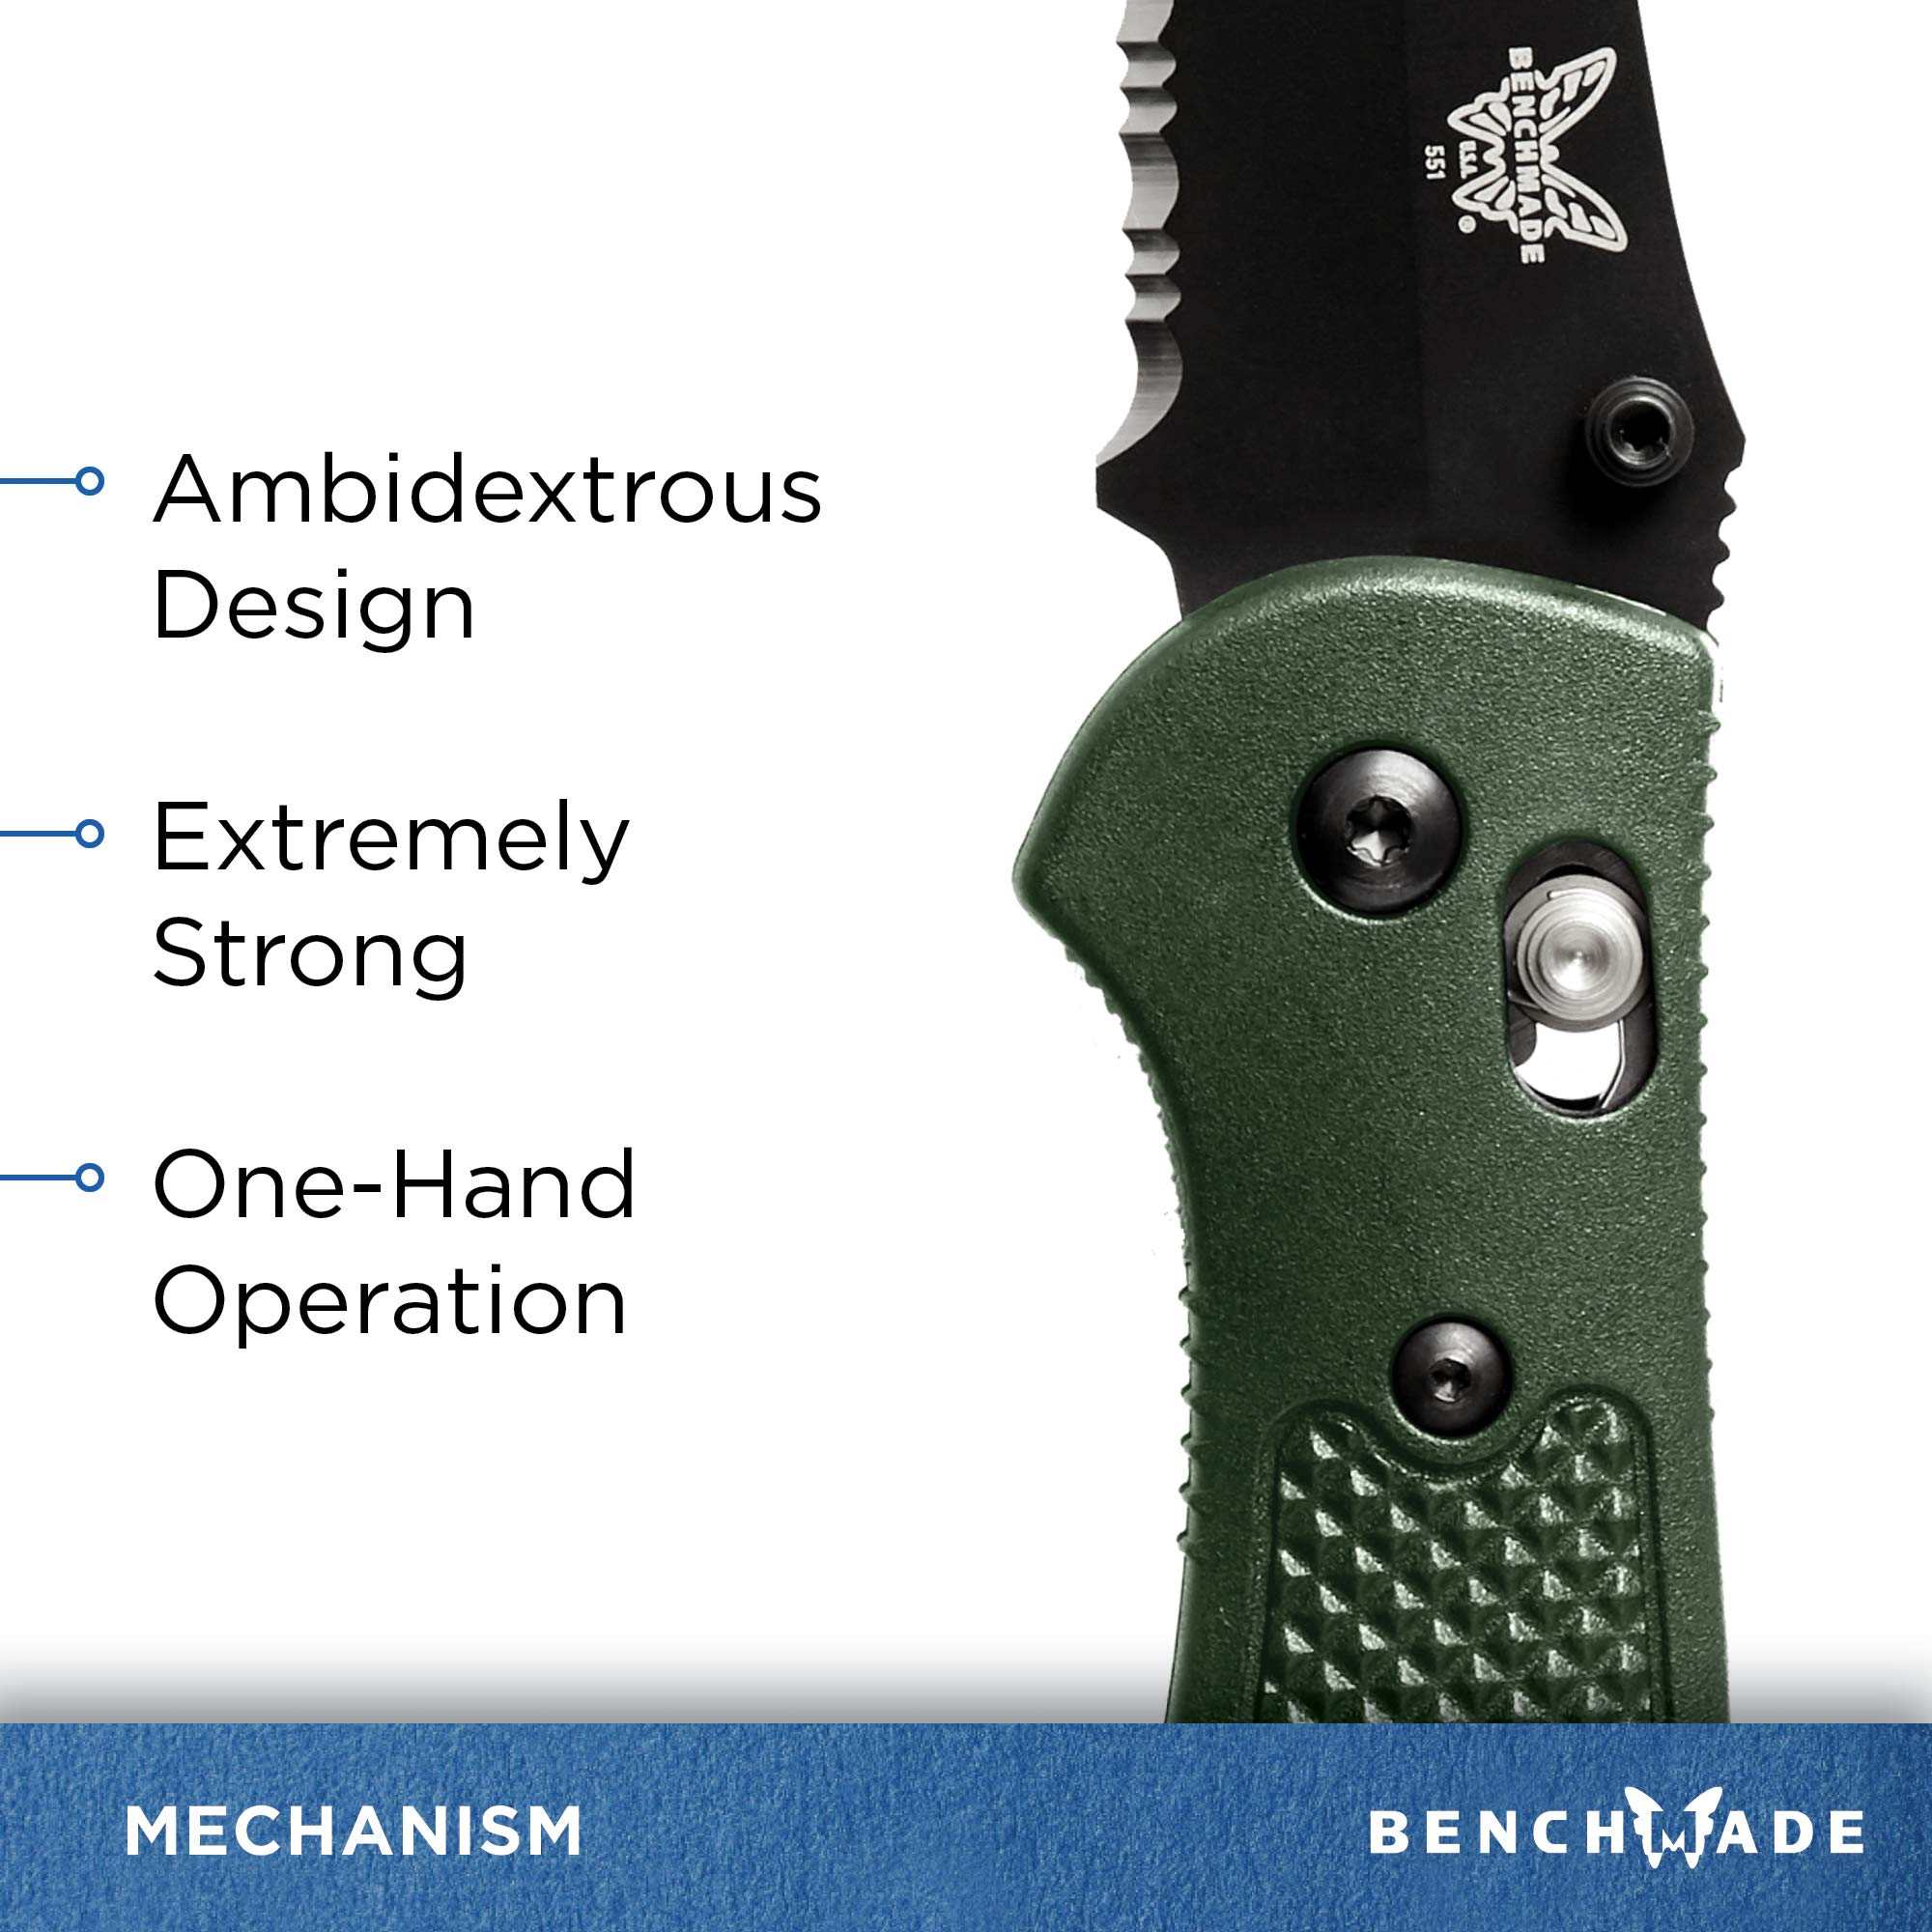 Benchmade - Griptilian 551 Knife with CPM-S30V Steel, Drop-Point Blade, Serrated Edge, Coated Finish, Olive Handle by Benchmade (Image #5)